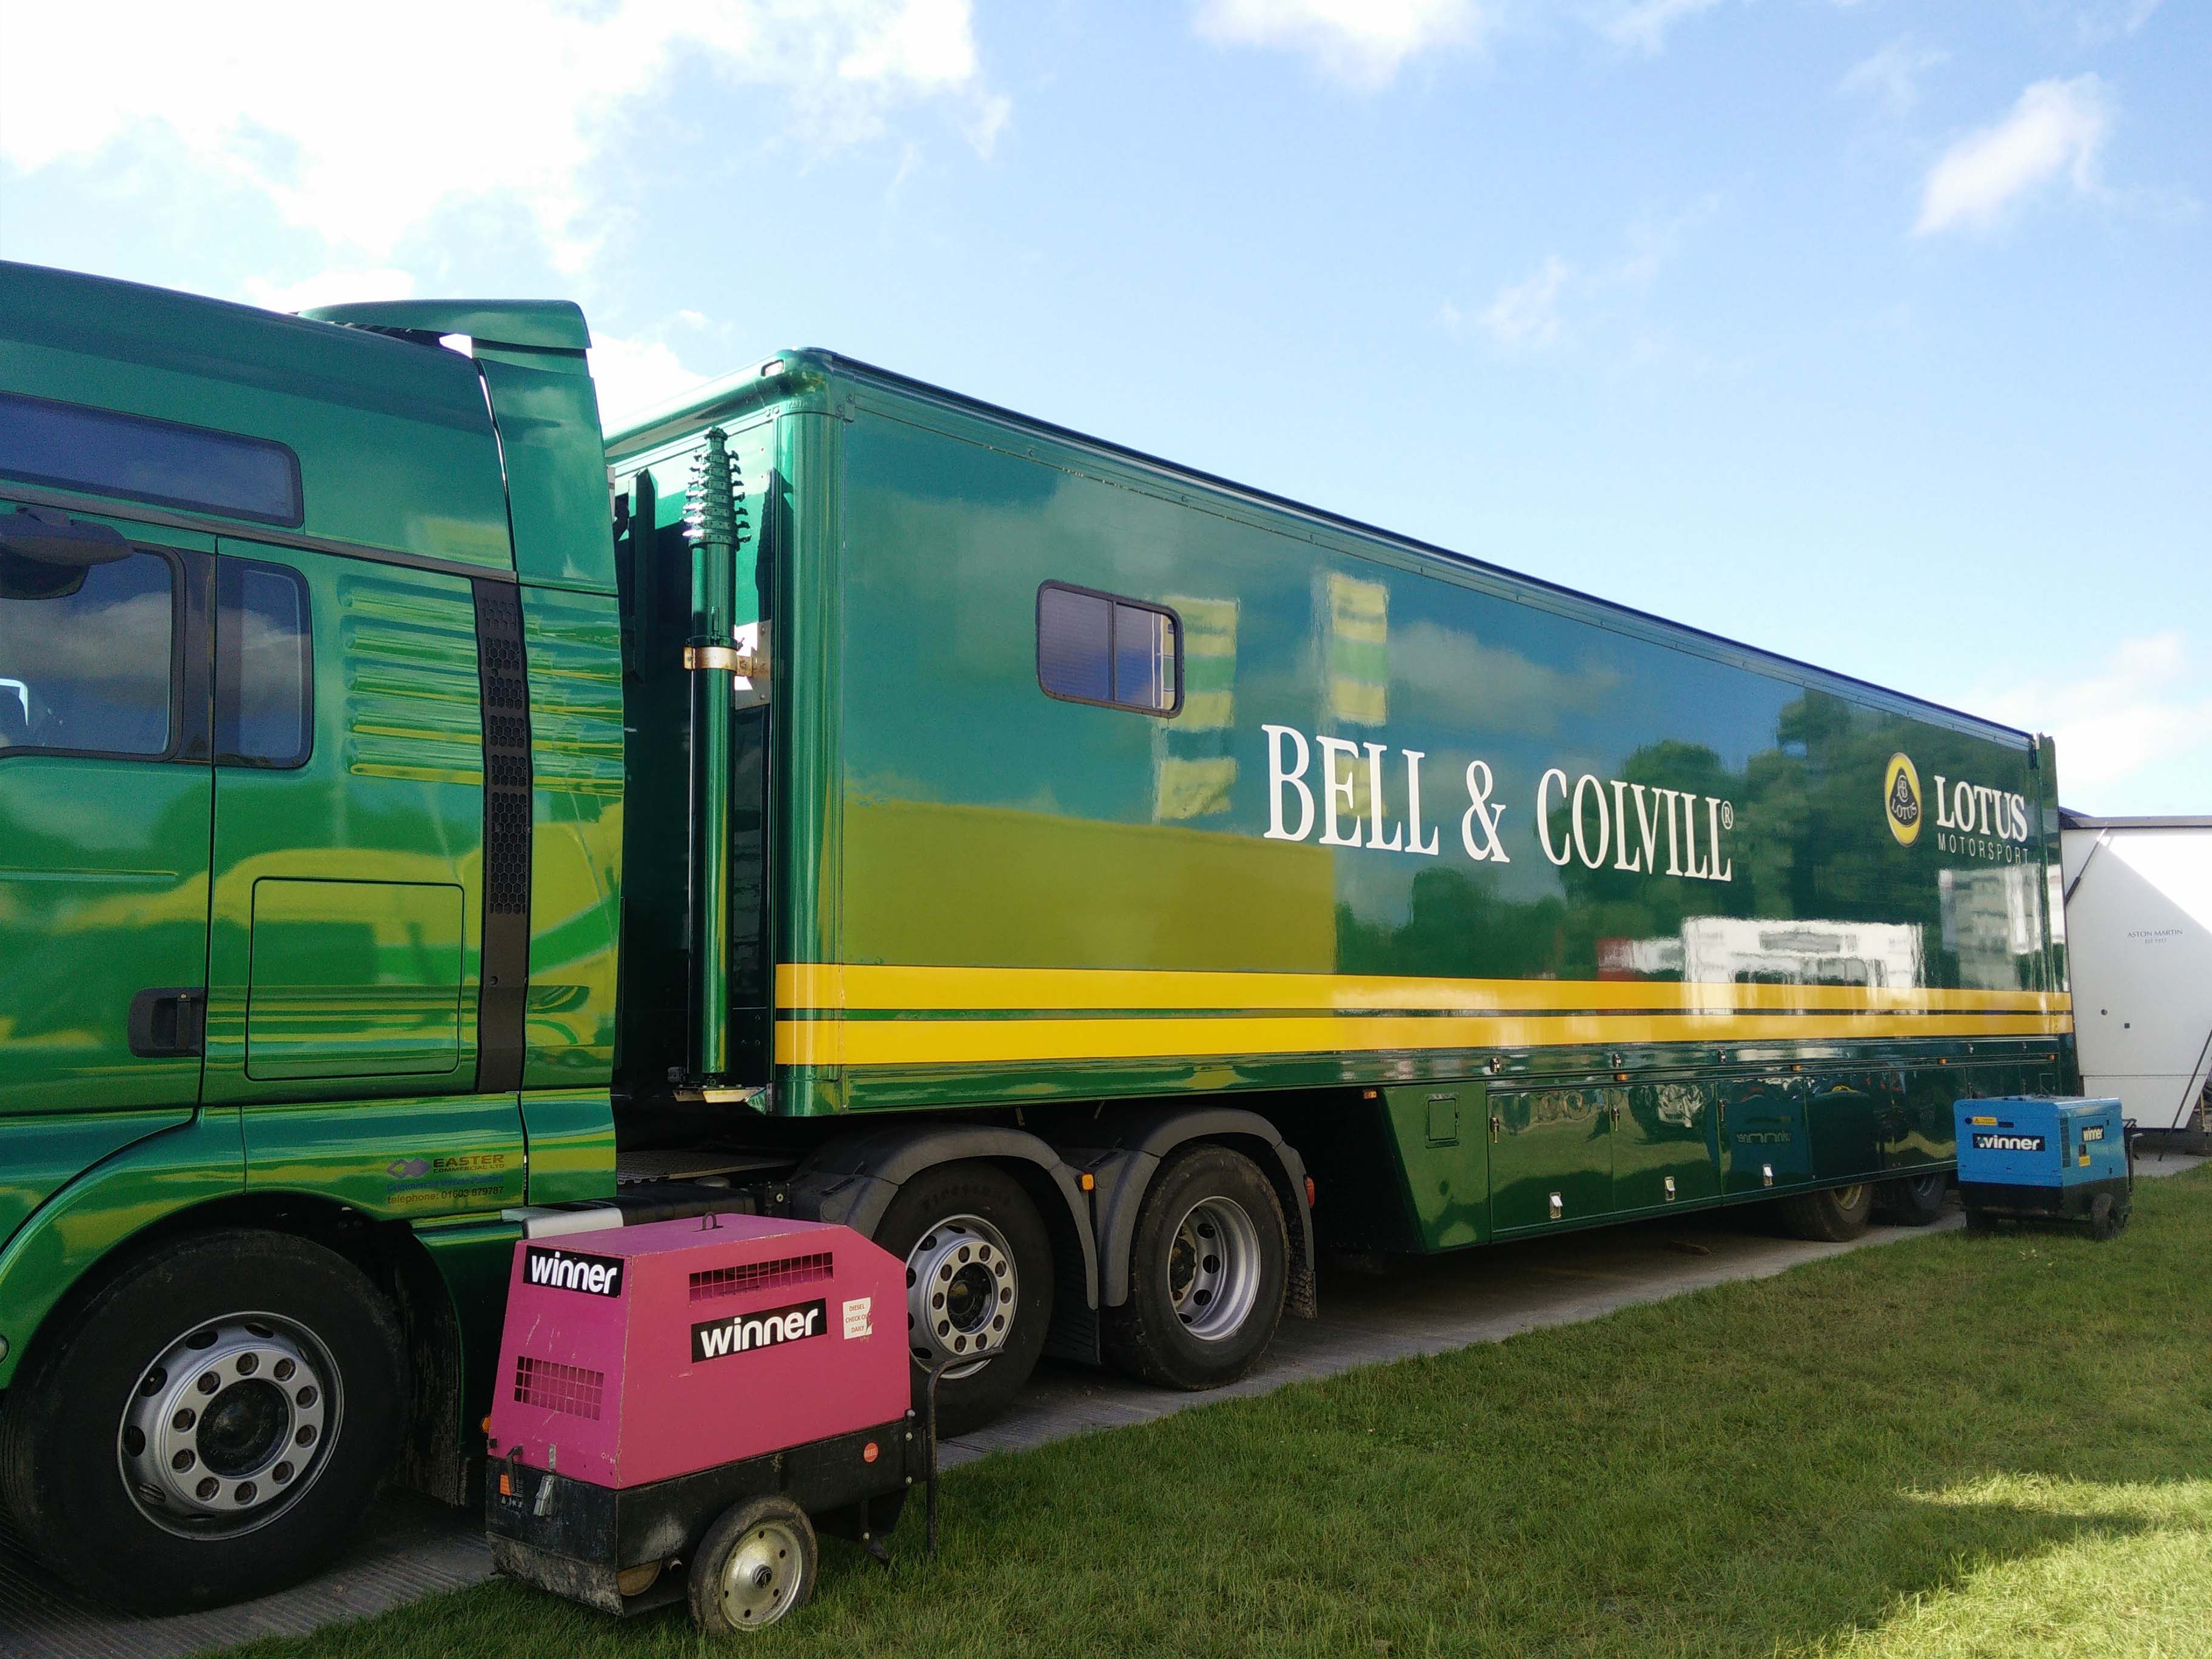 Trailer Branding for Lotus at Goodwood FOS